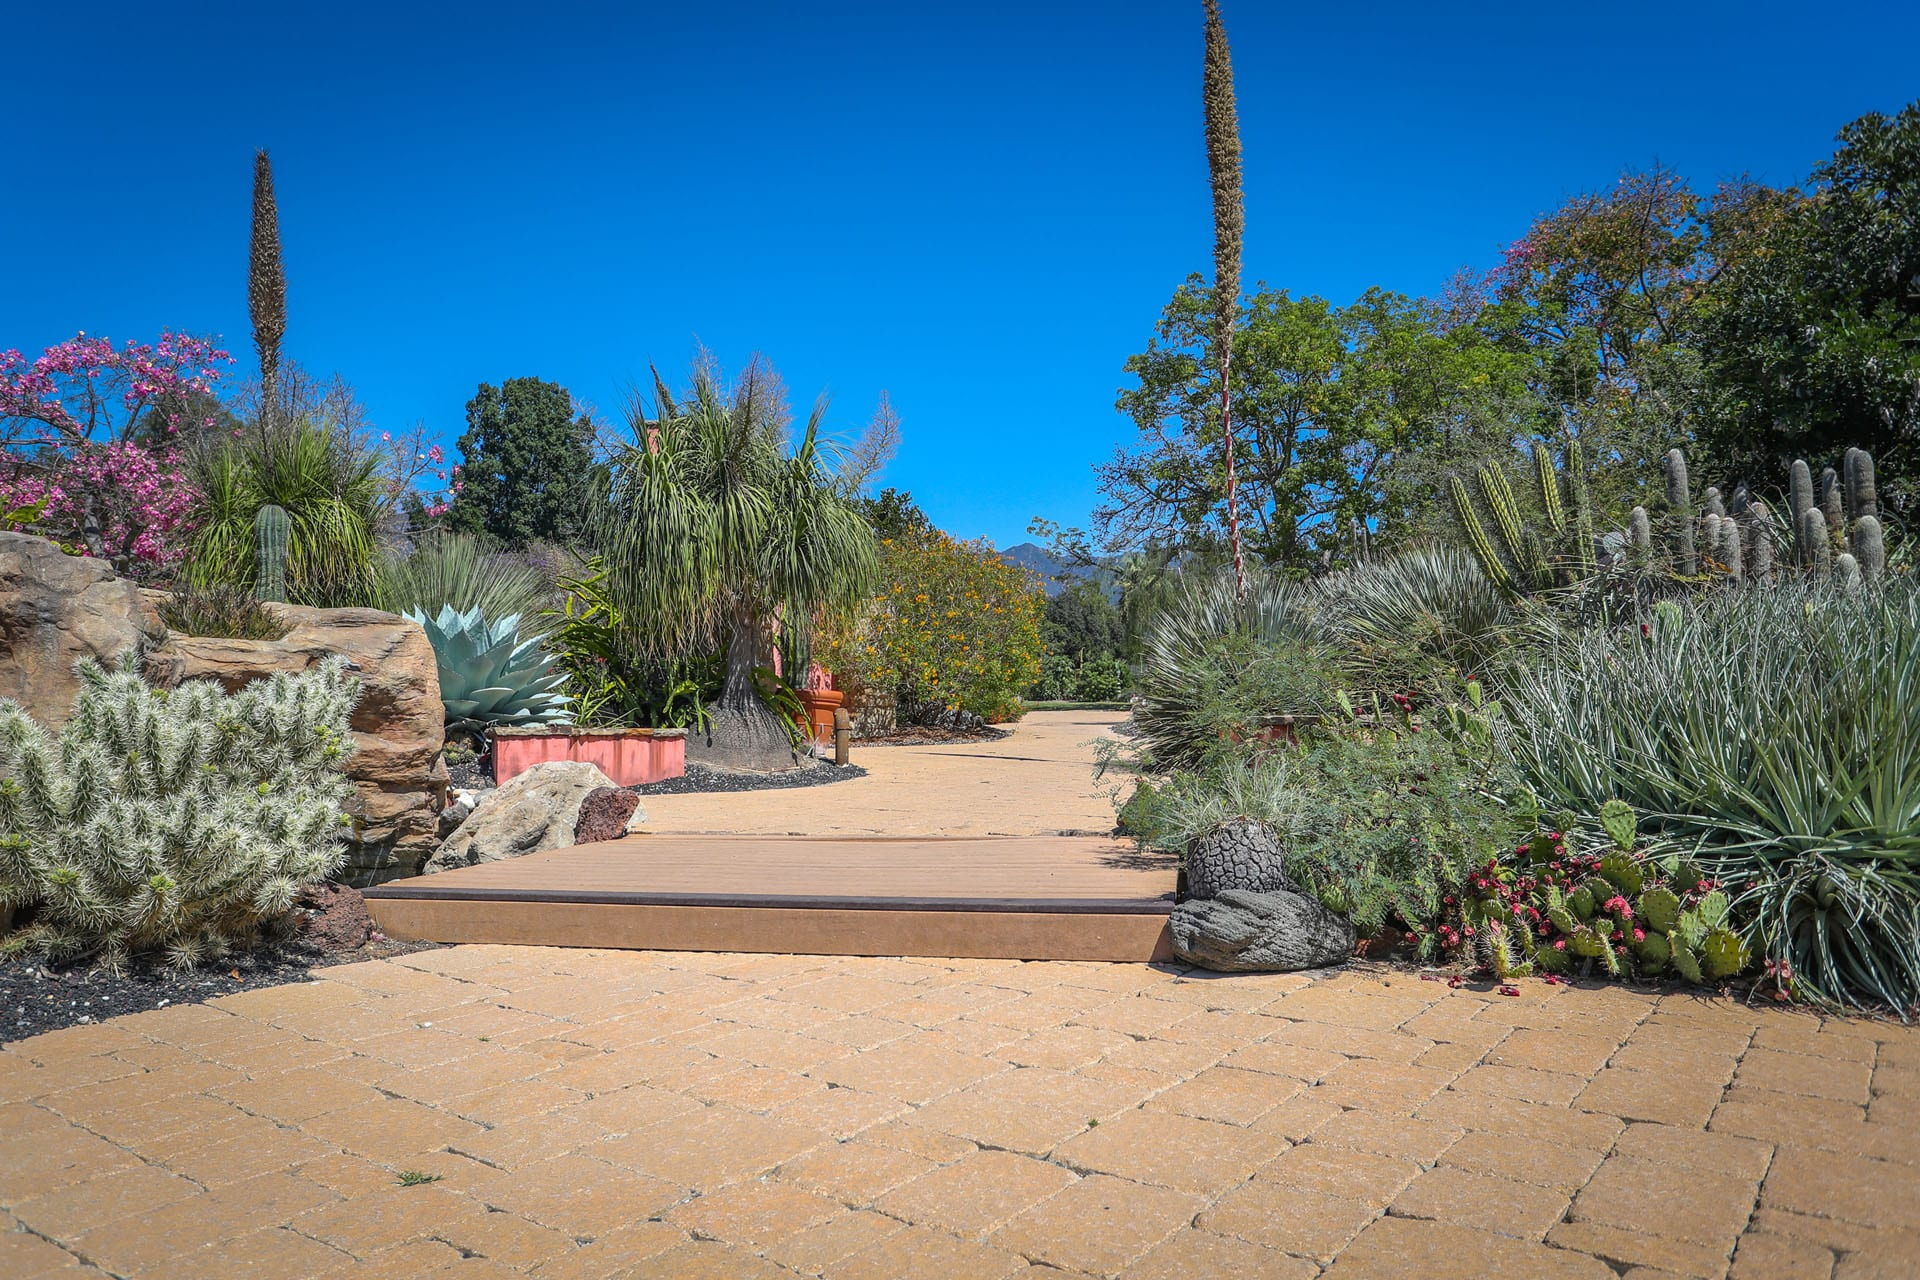 Dirt path and cacti